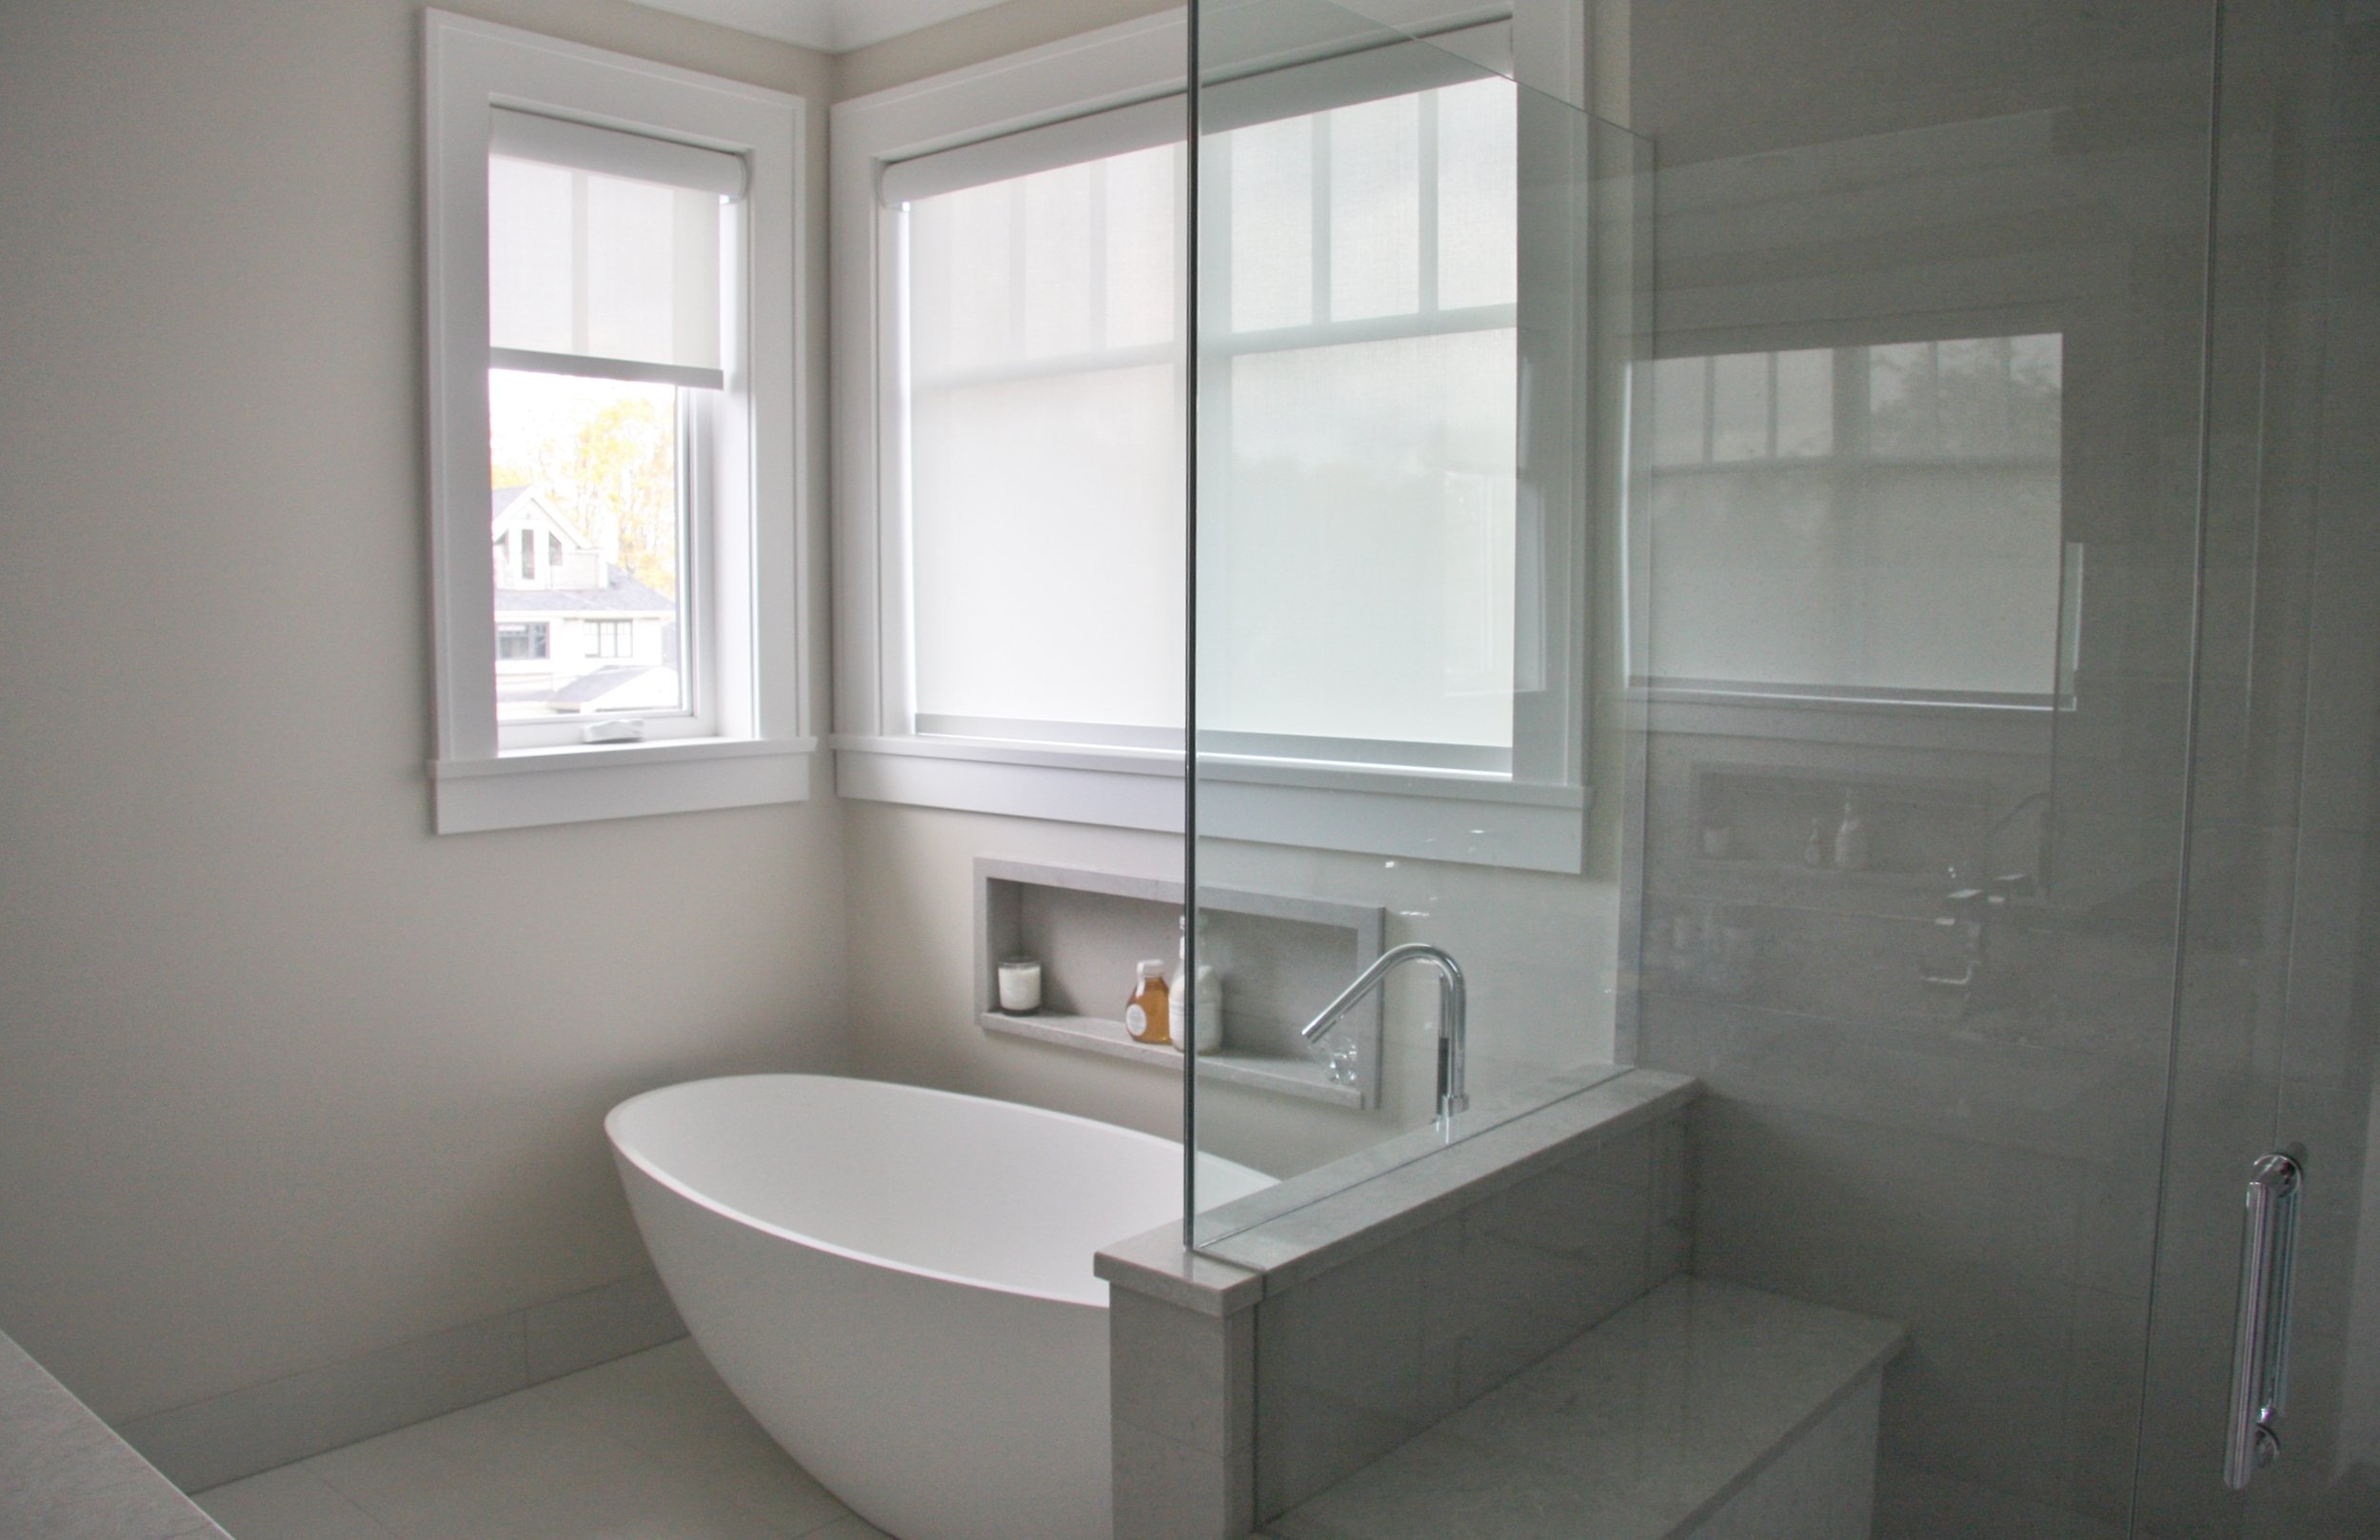 Solar shades master bathroom.JPG